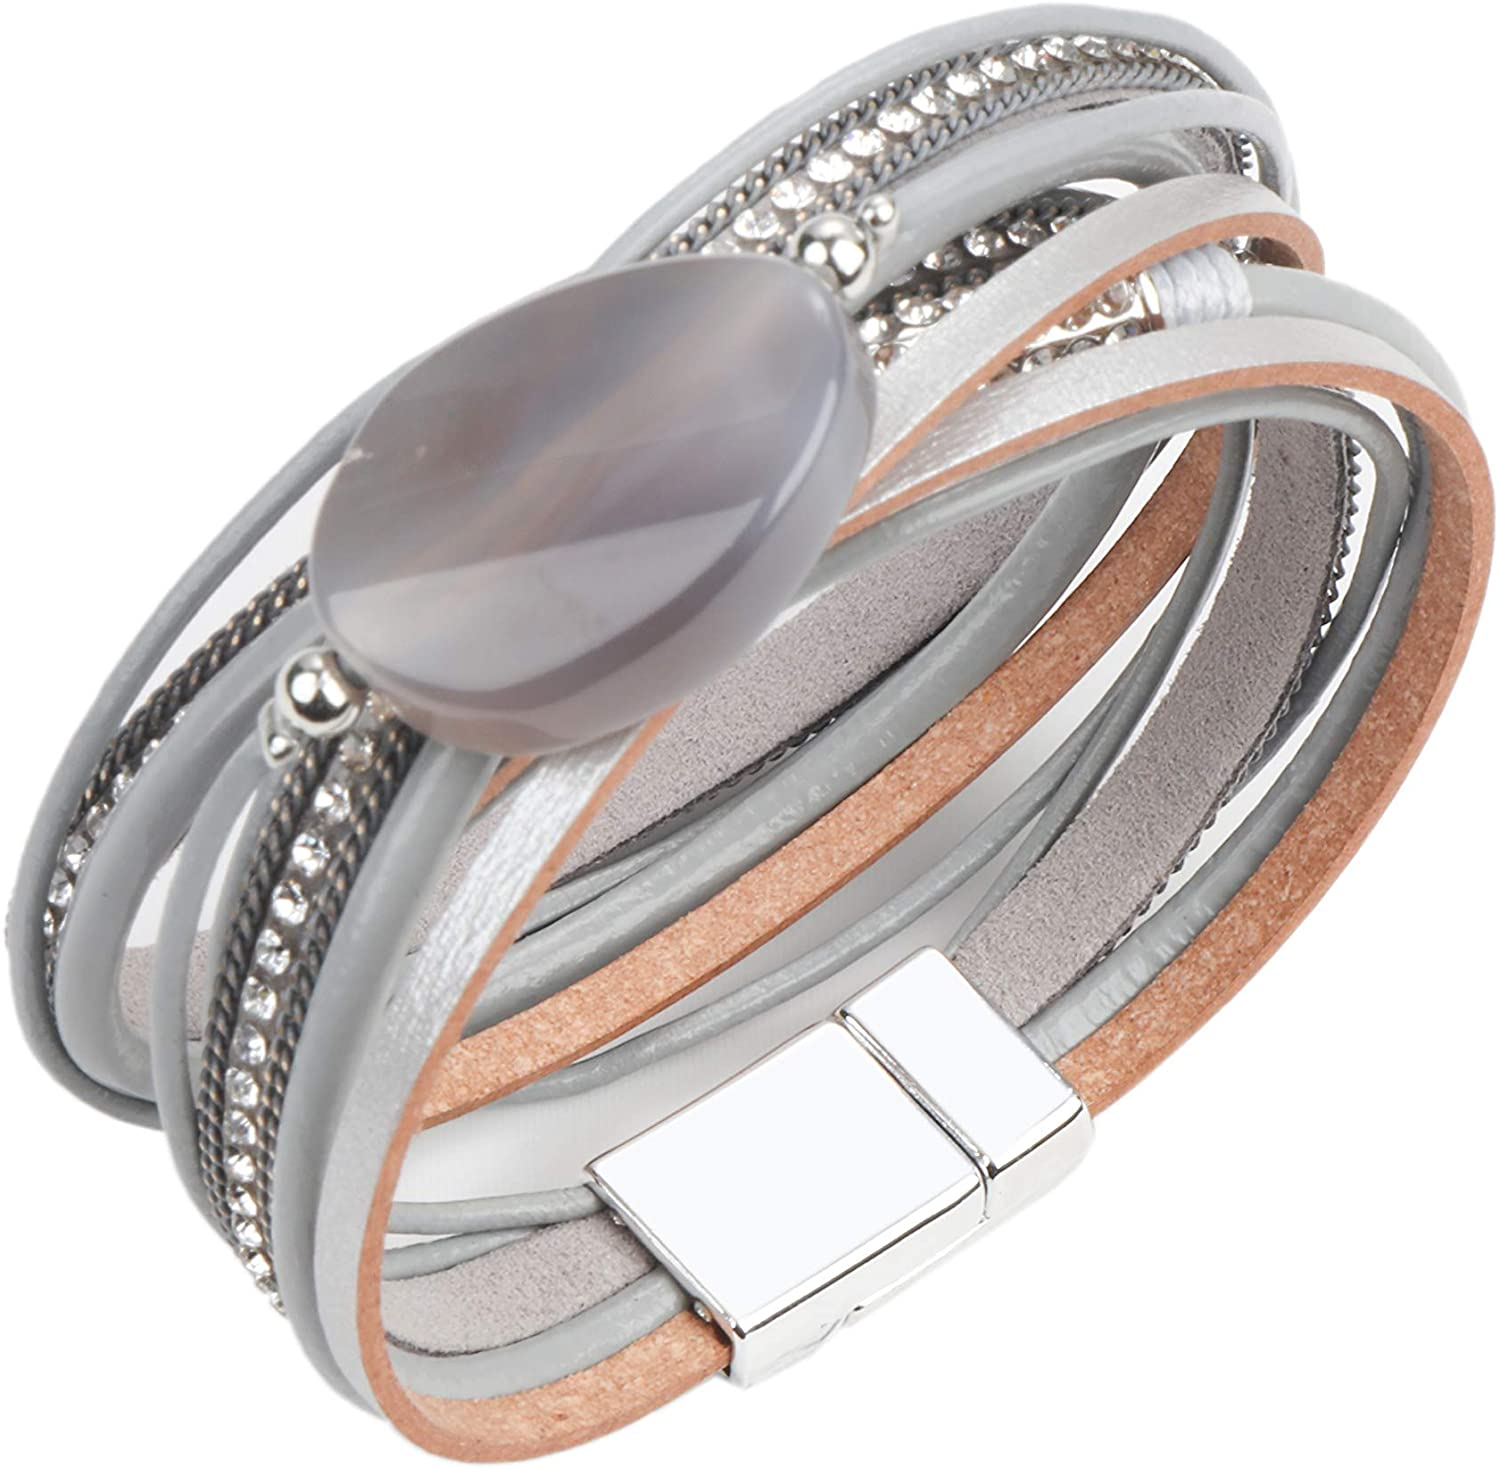 Women Leather Wrap Bracelet Multilayer Braided Stacking Bracelet with Magnetic Clasp - Bohemian Style Gift for Women